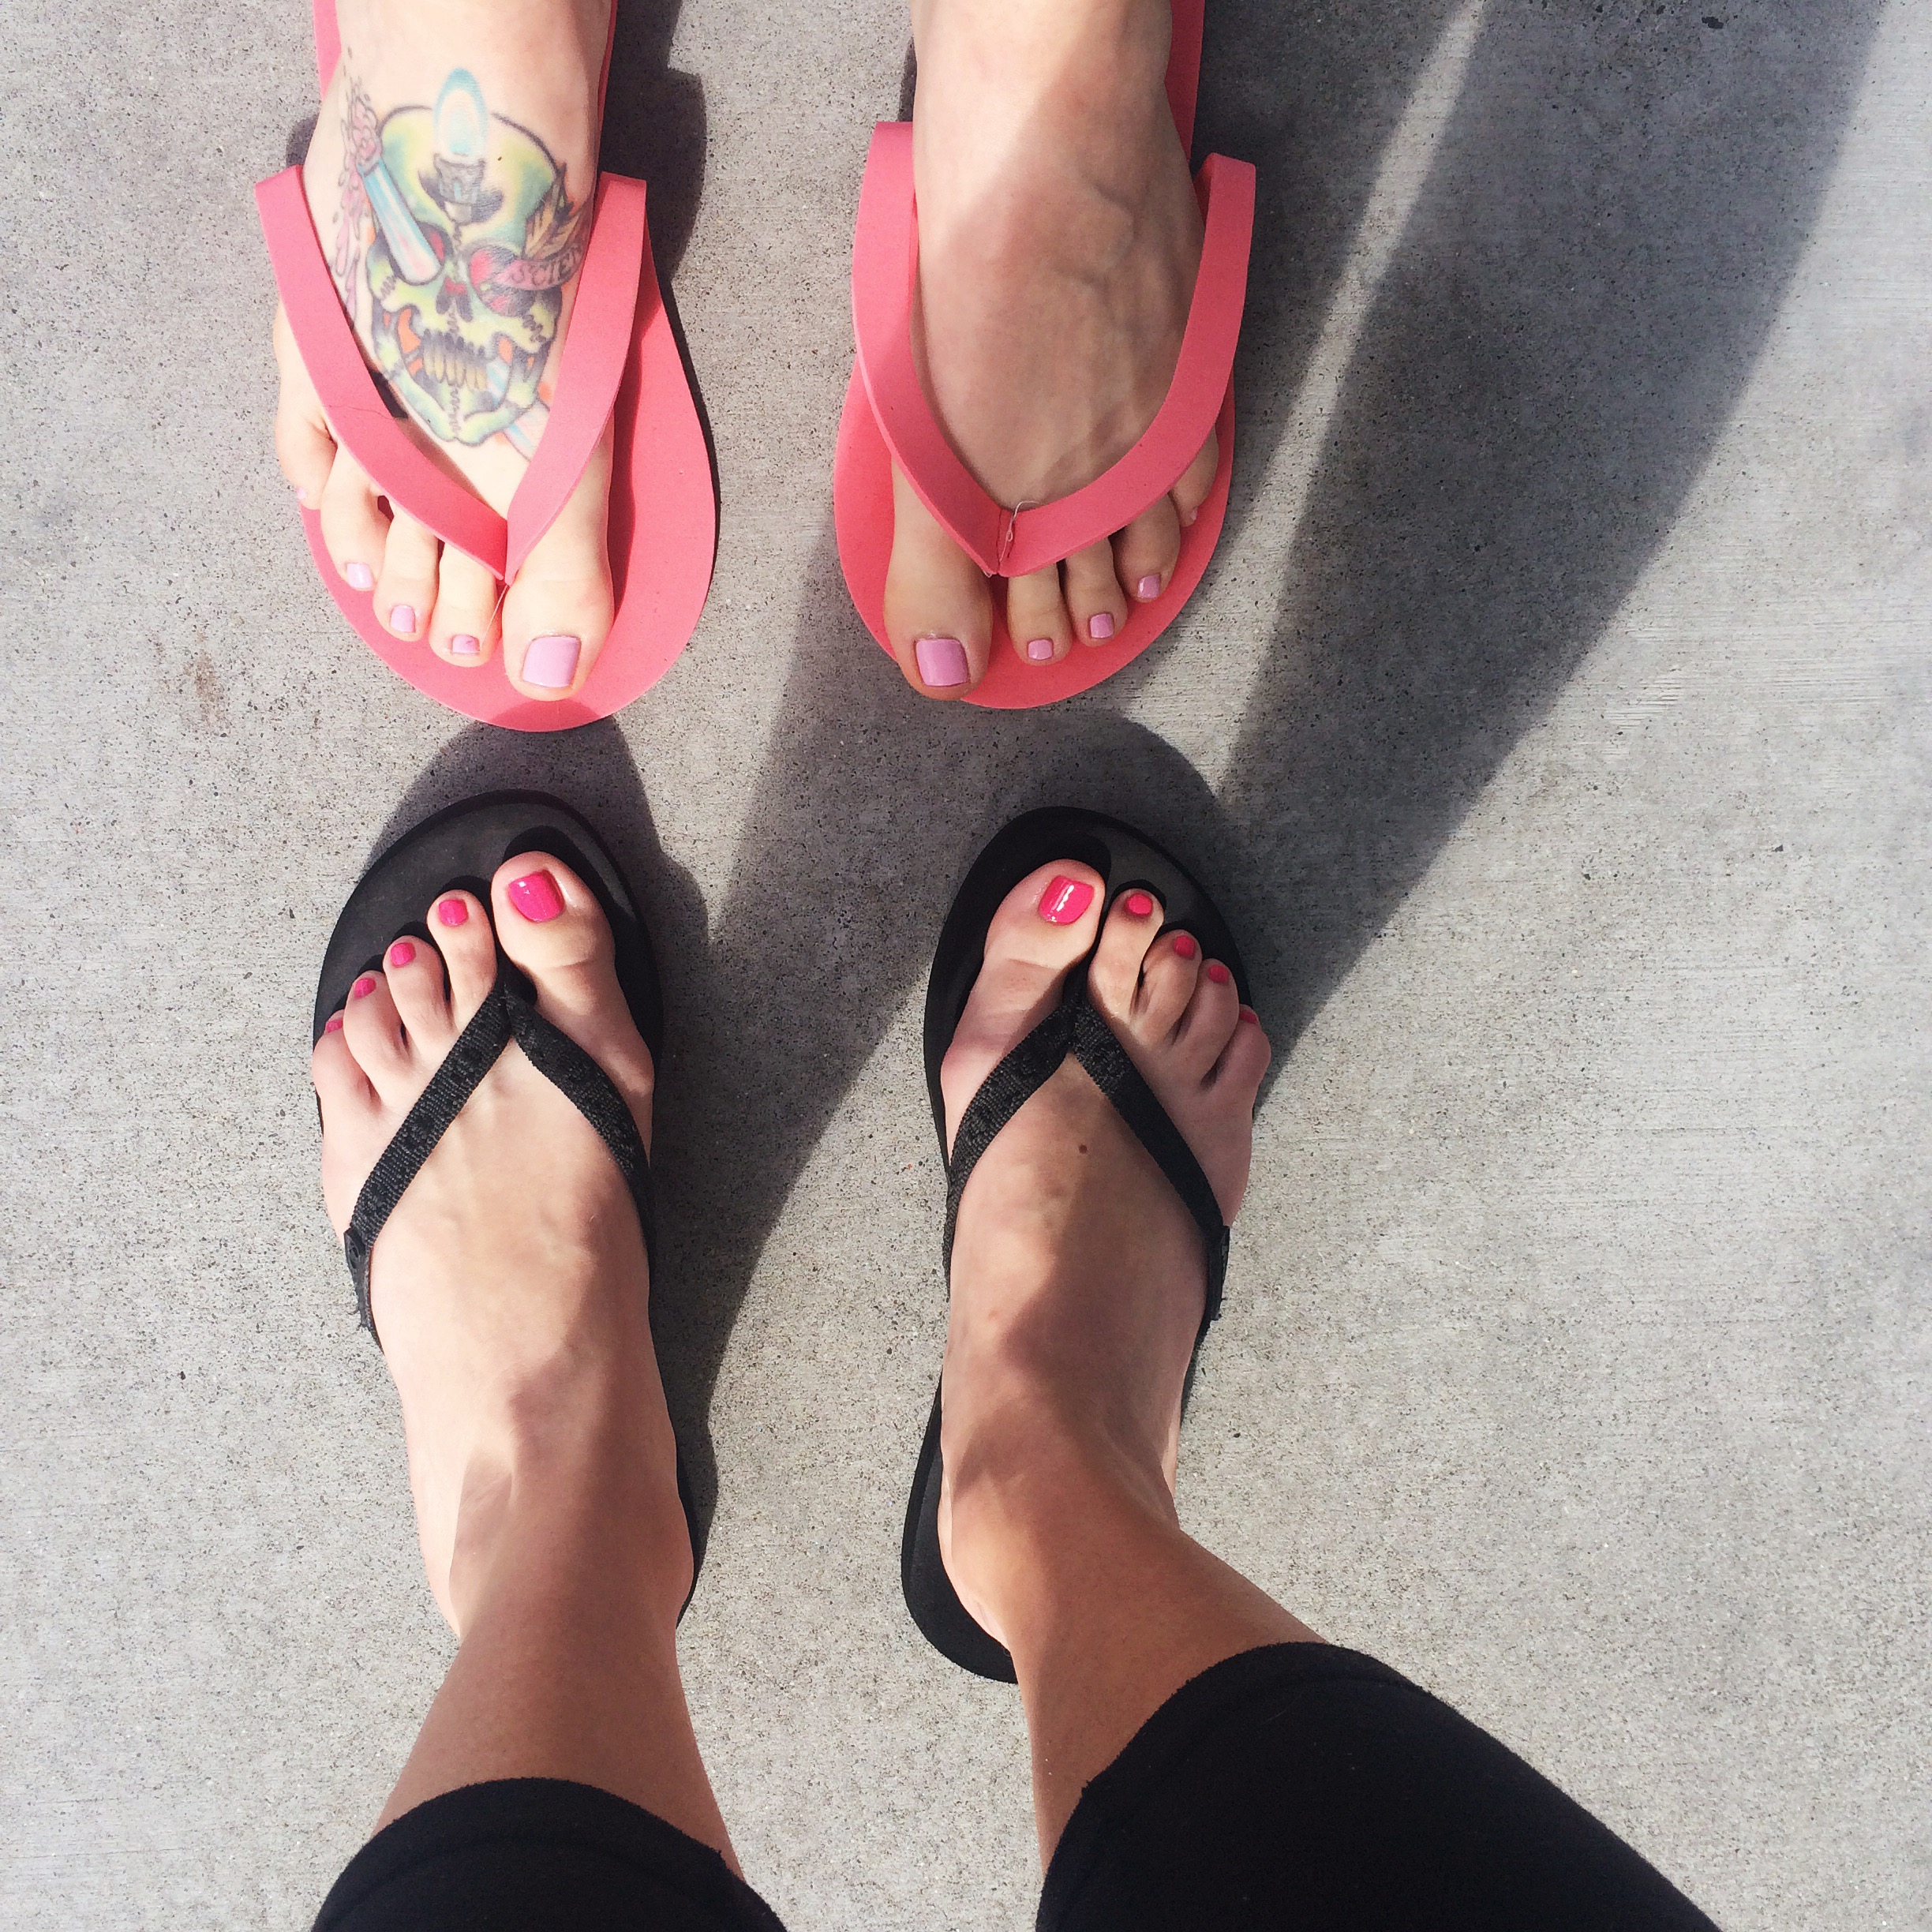 Find time for relaxation with girlfriends, like going for a walk, getting a pedicure, or just hanging out.